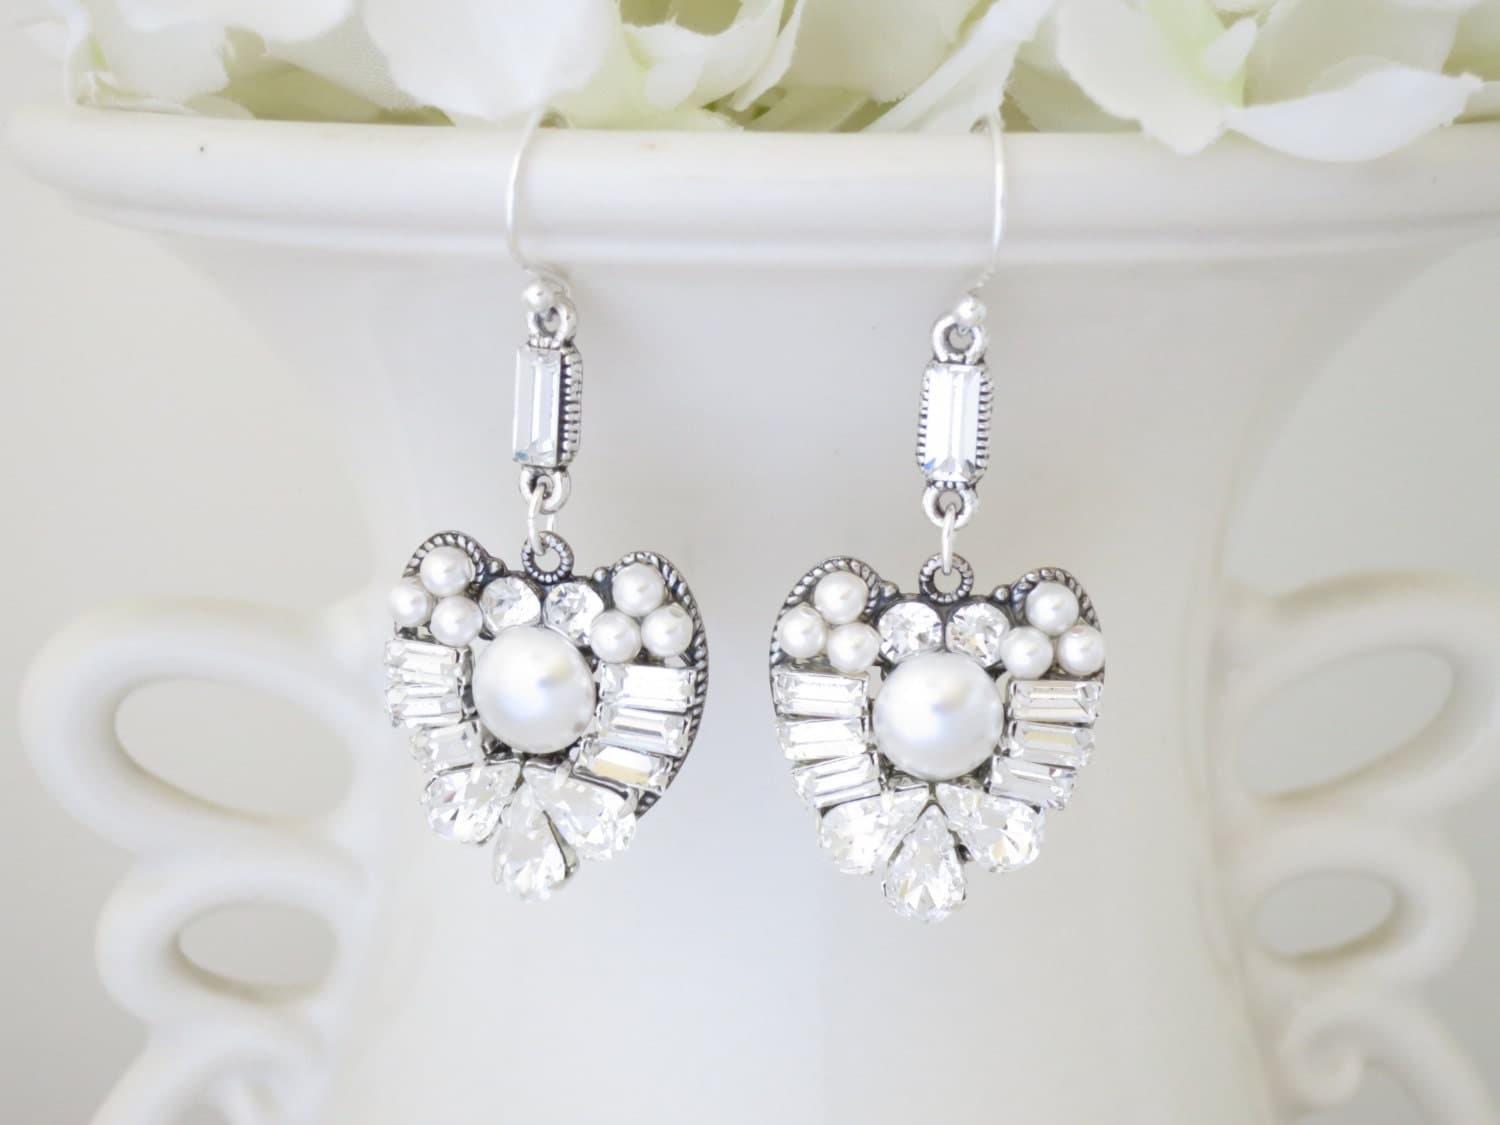 Swarovski crystal and pearl bridal earring, Rhinestone and pearl drop earring, Unique wedding earring